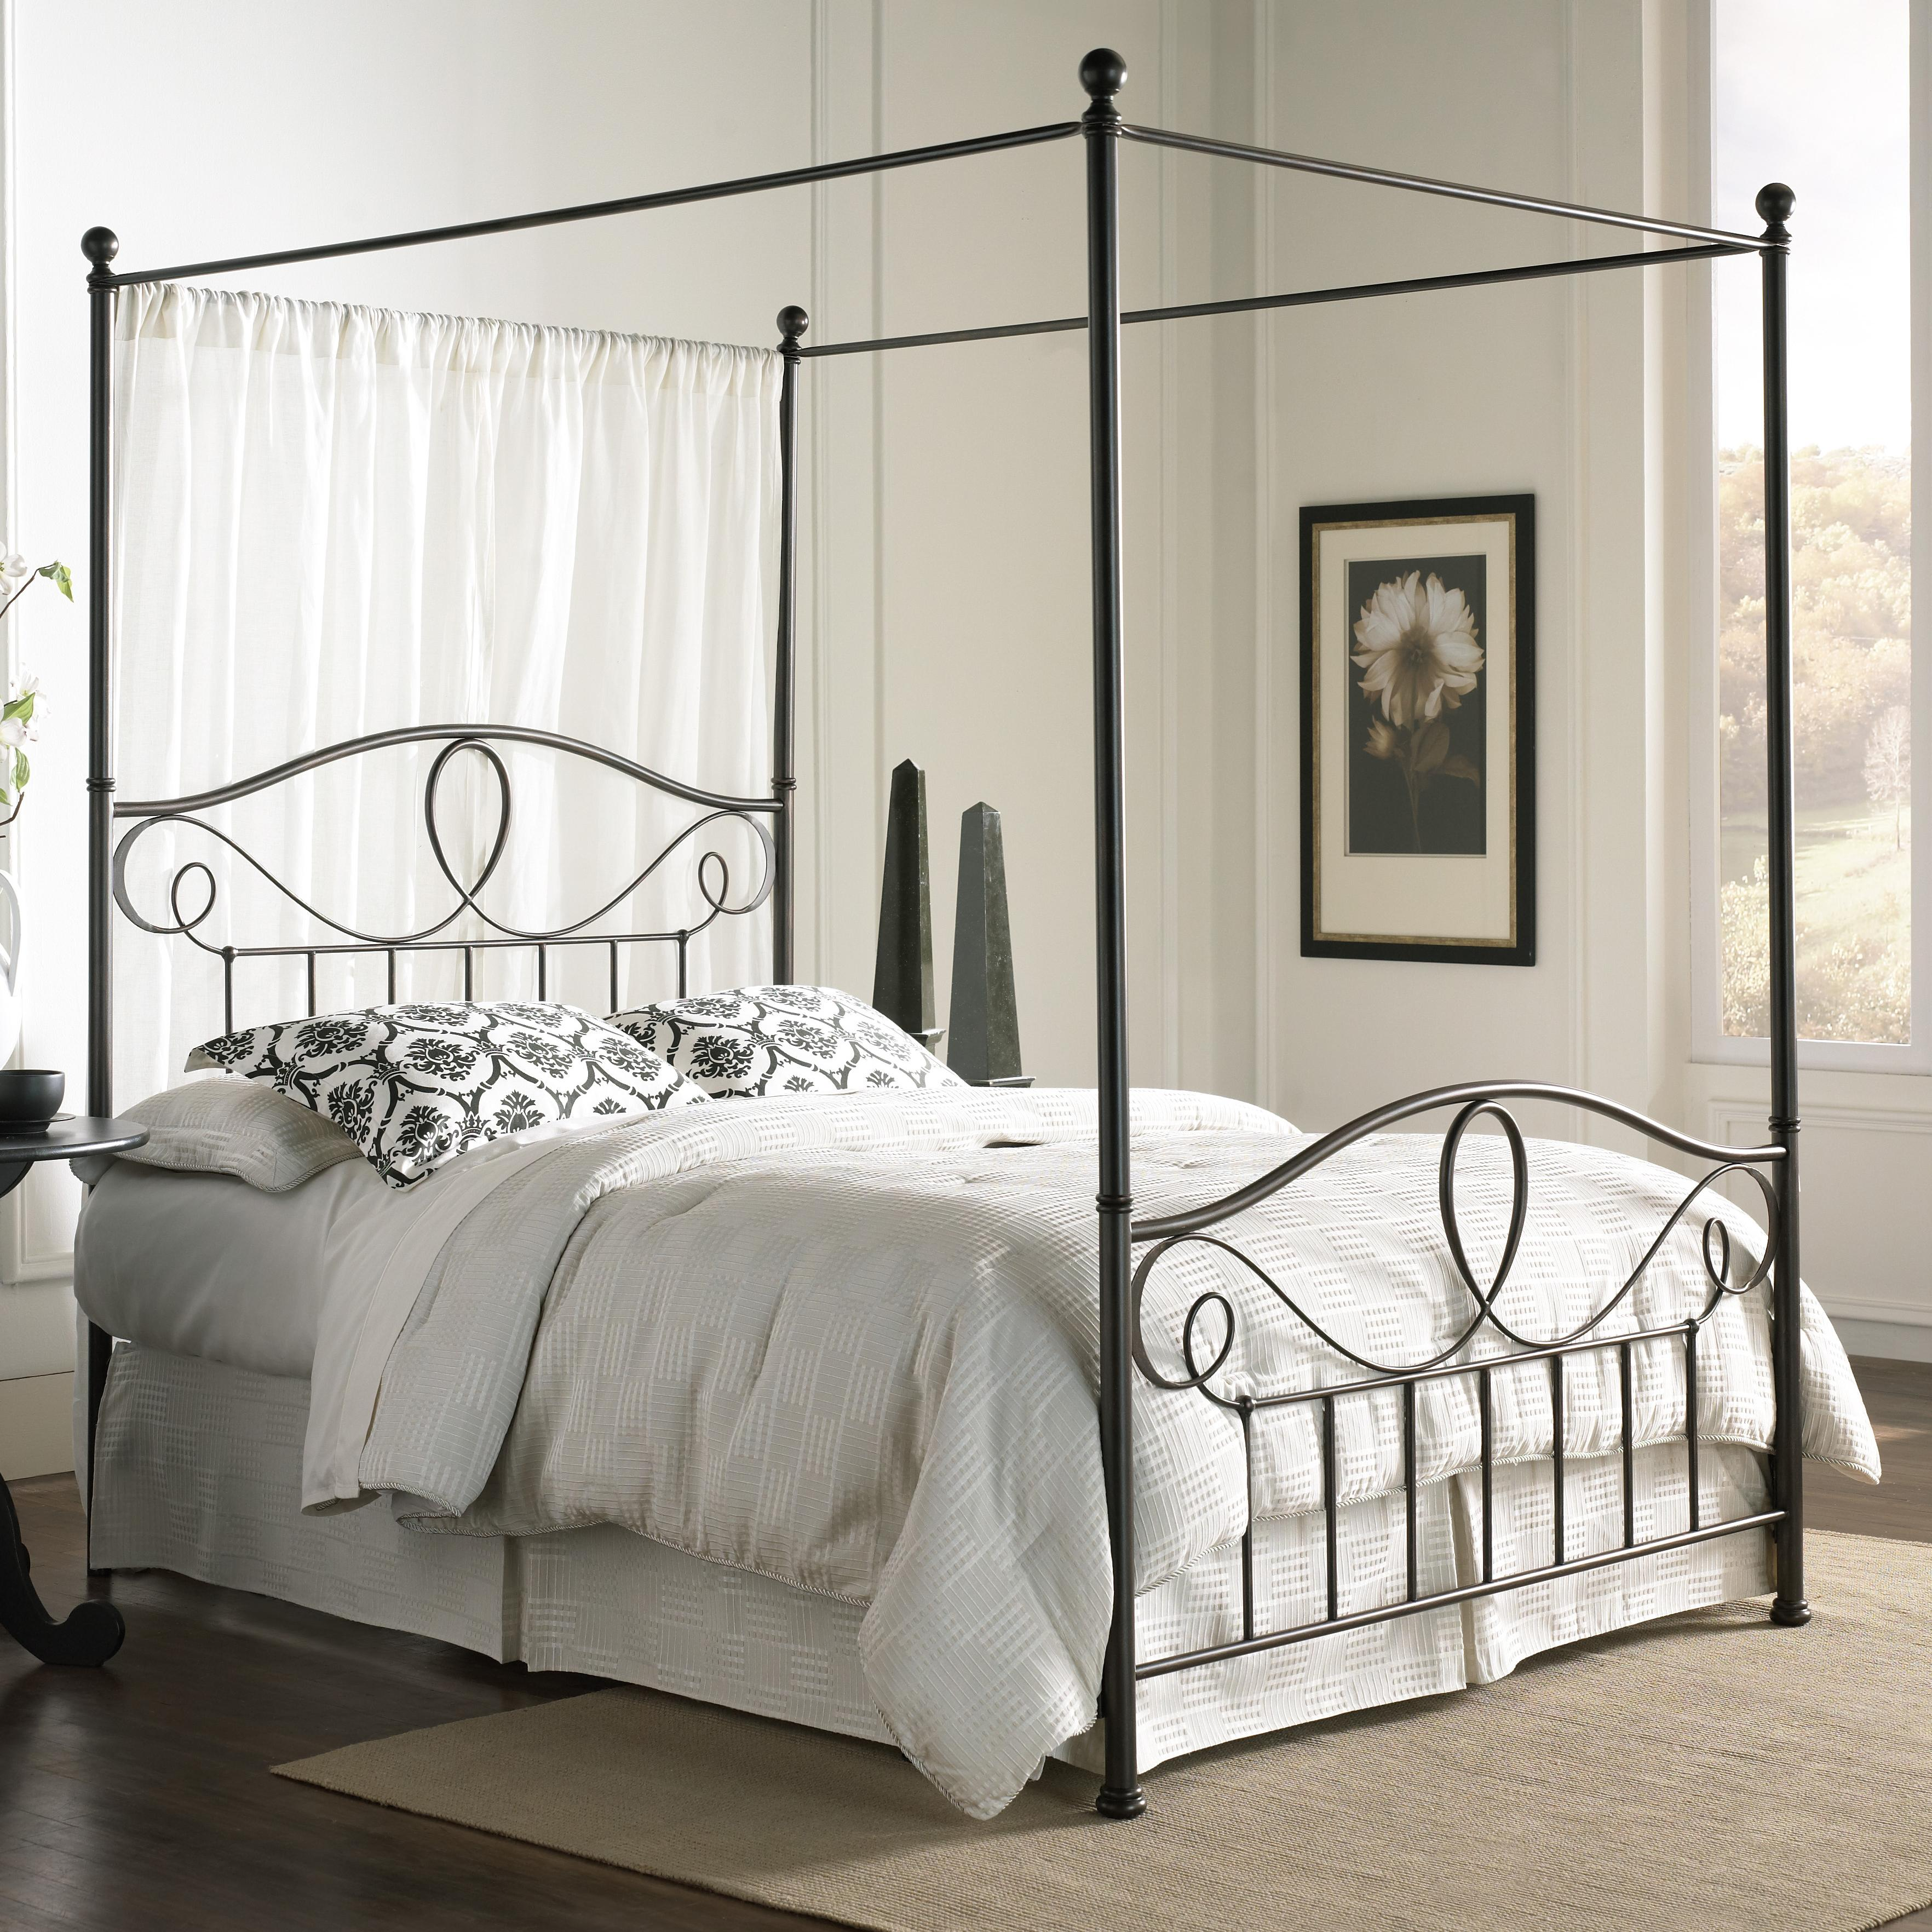 Fashion Bed Group Canopy Beds Full Sylvania Canopy Bed: short canopy bed